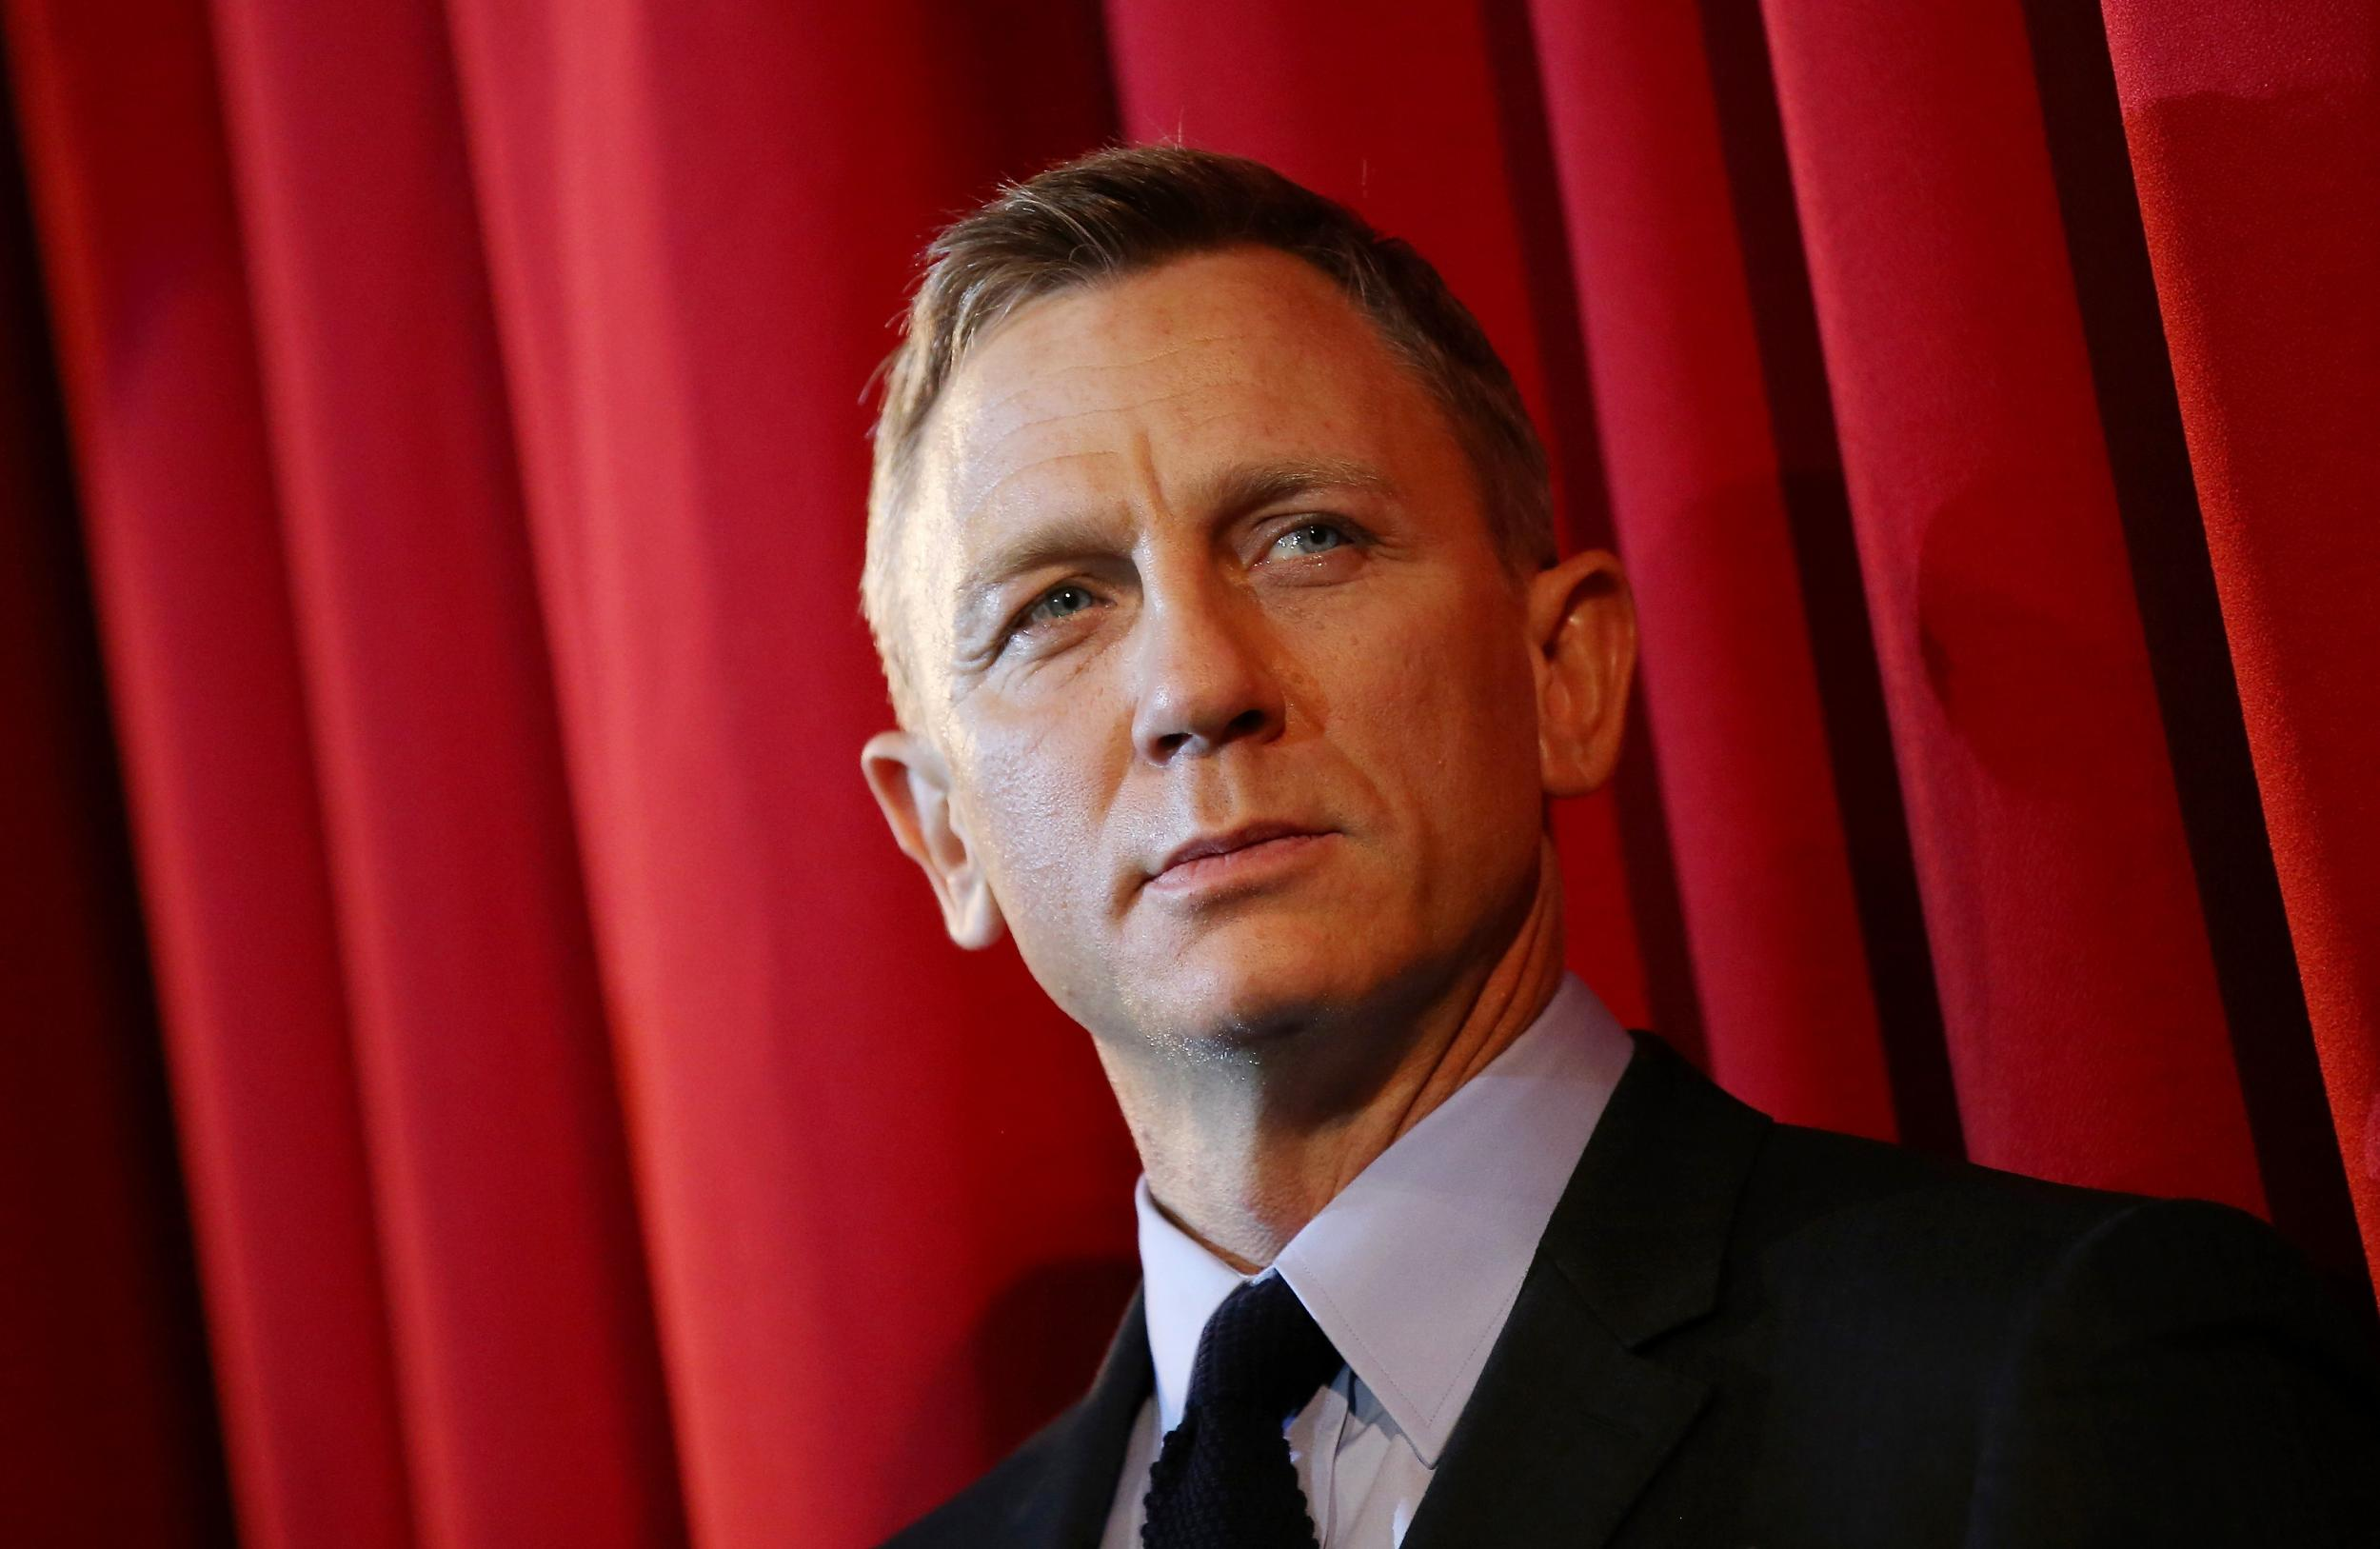 James Bond: Daniel Craig 'really quite drunk' as he makes emotional speech at No Time To Die wrap party